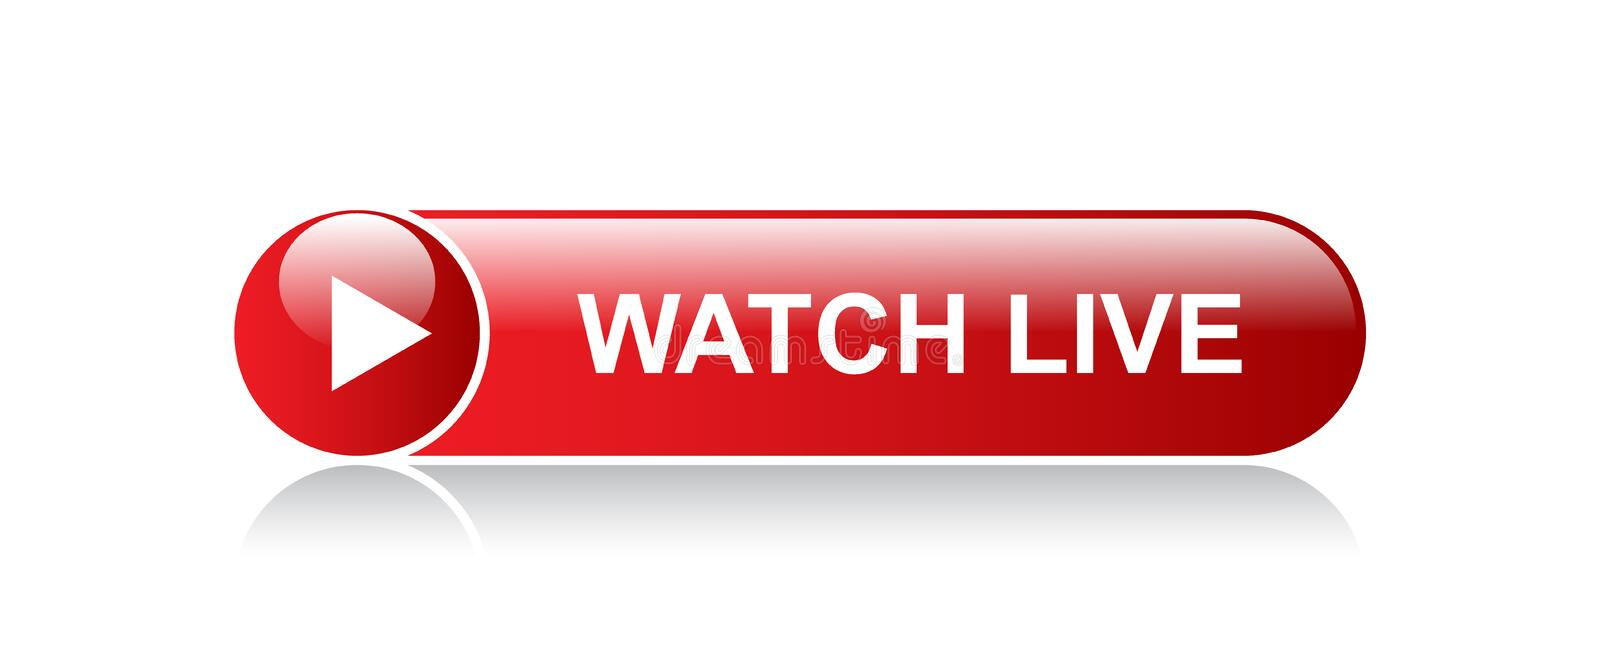 Live streaming button stock illustration. Illustration of game - 122343158